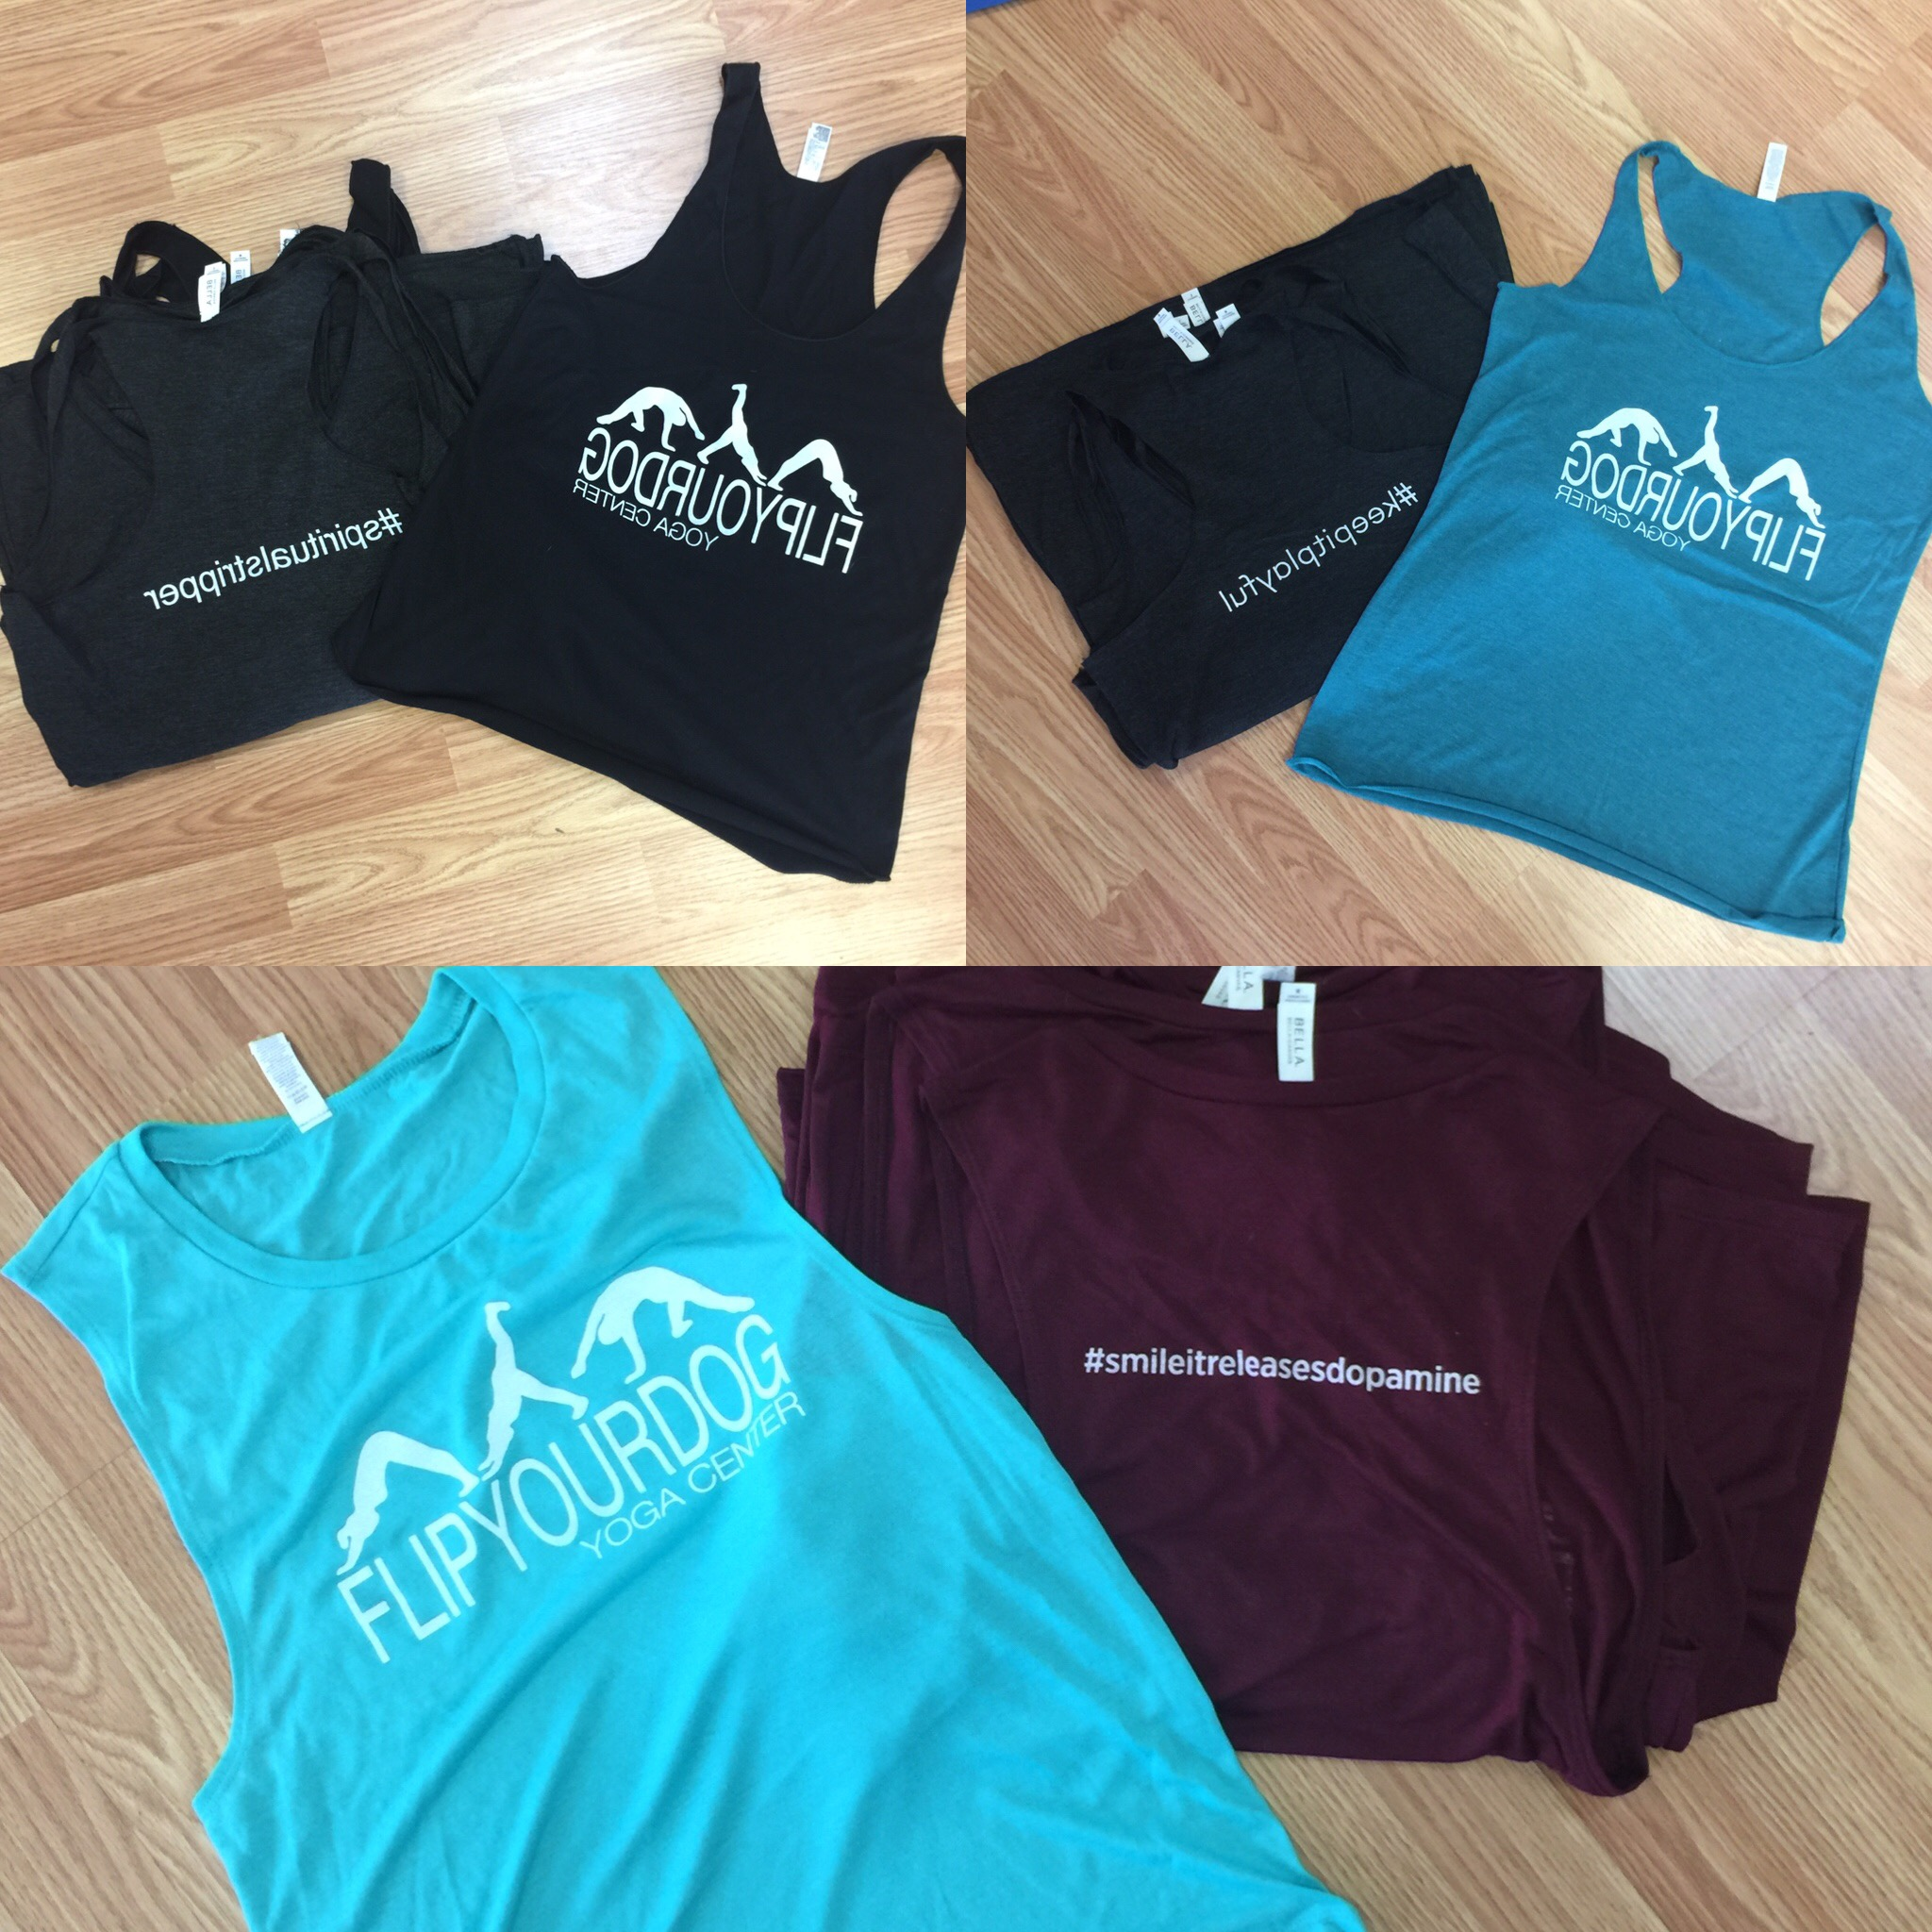 Flip Your Dog Yoga shirts are in! New styles in new hashtags…